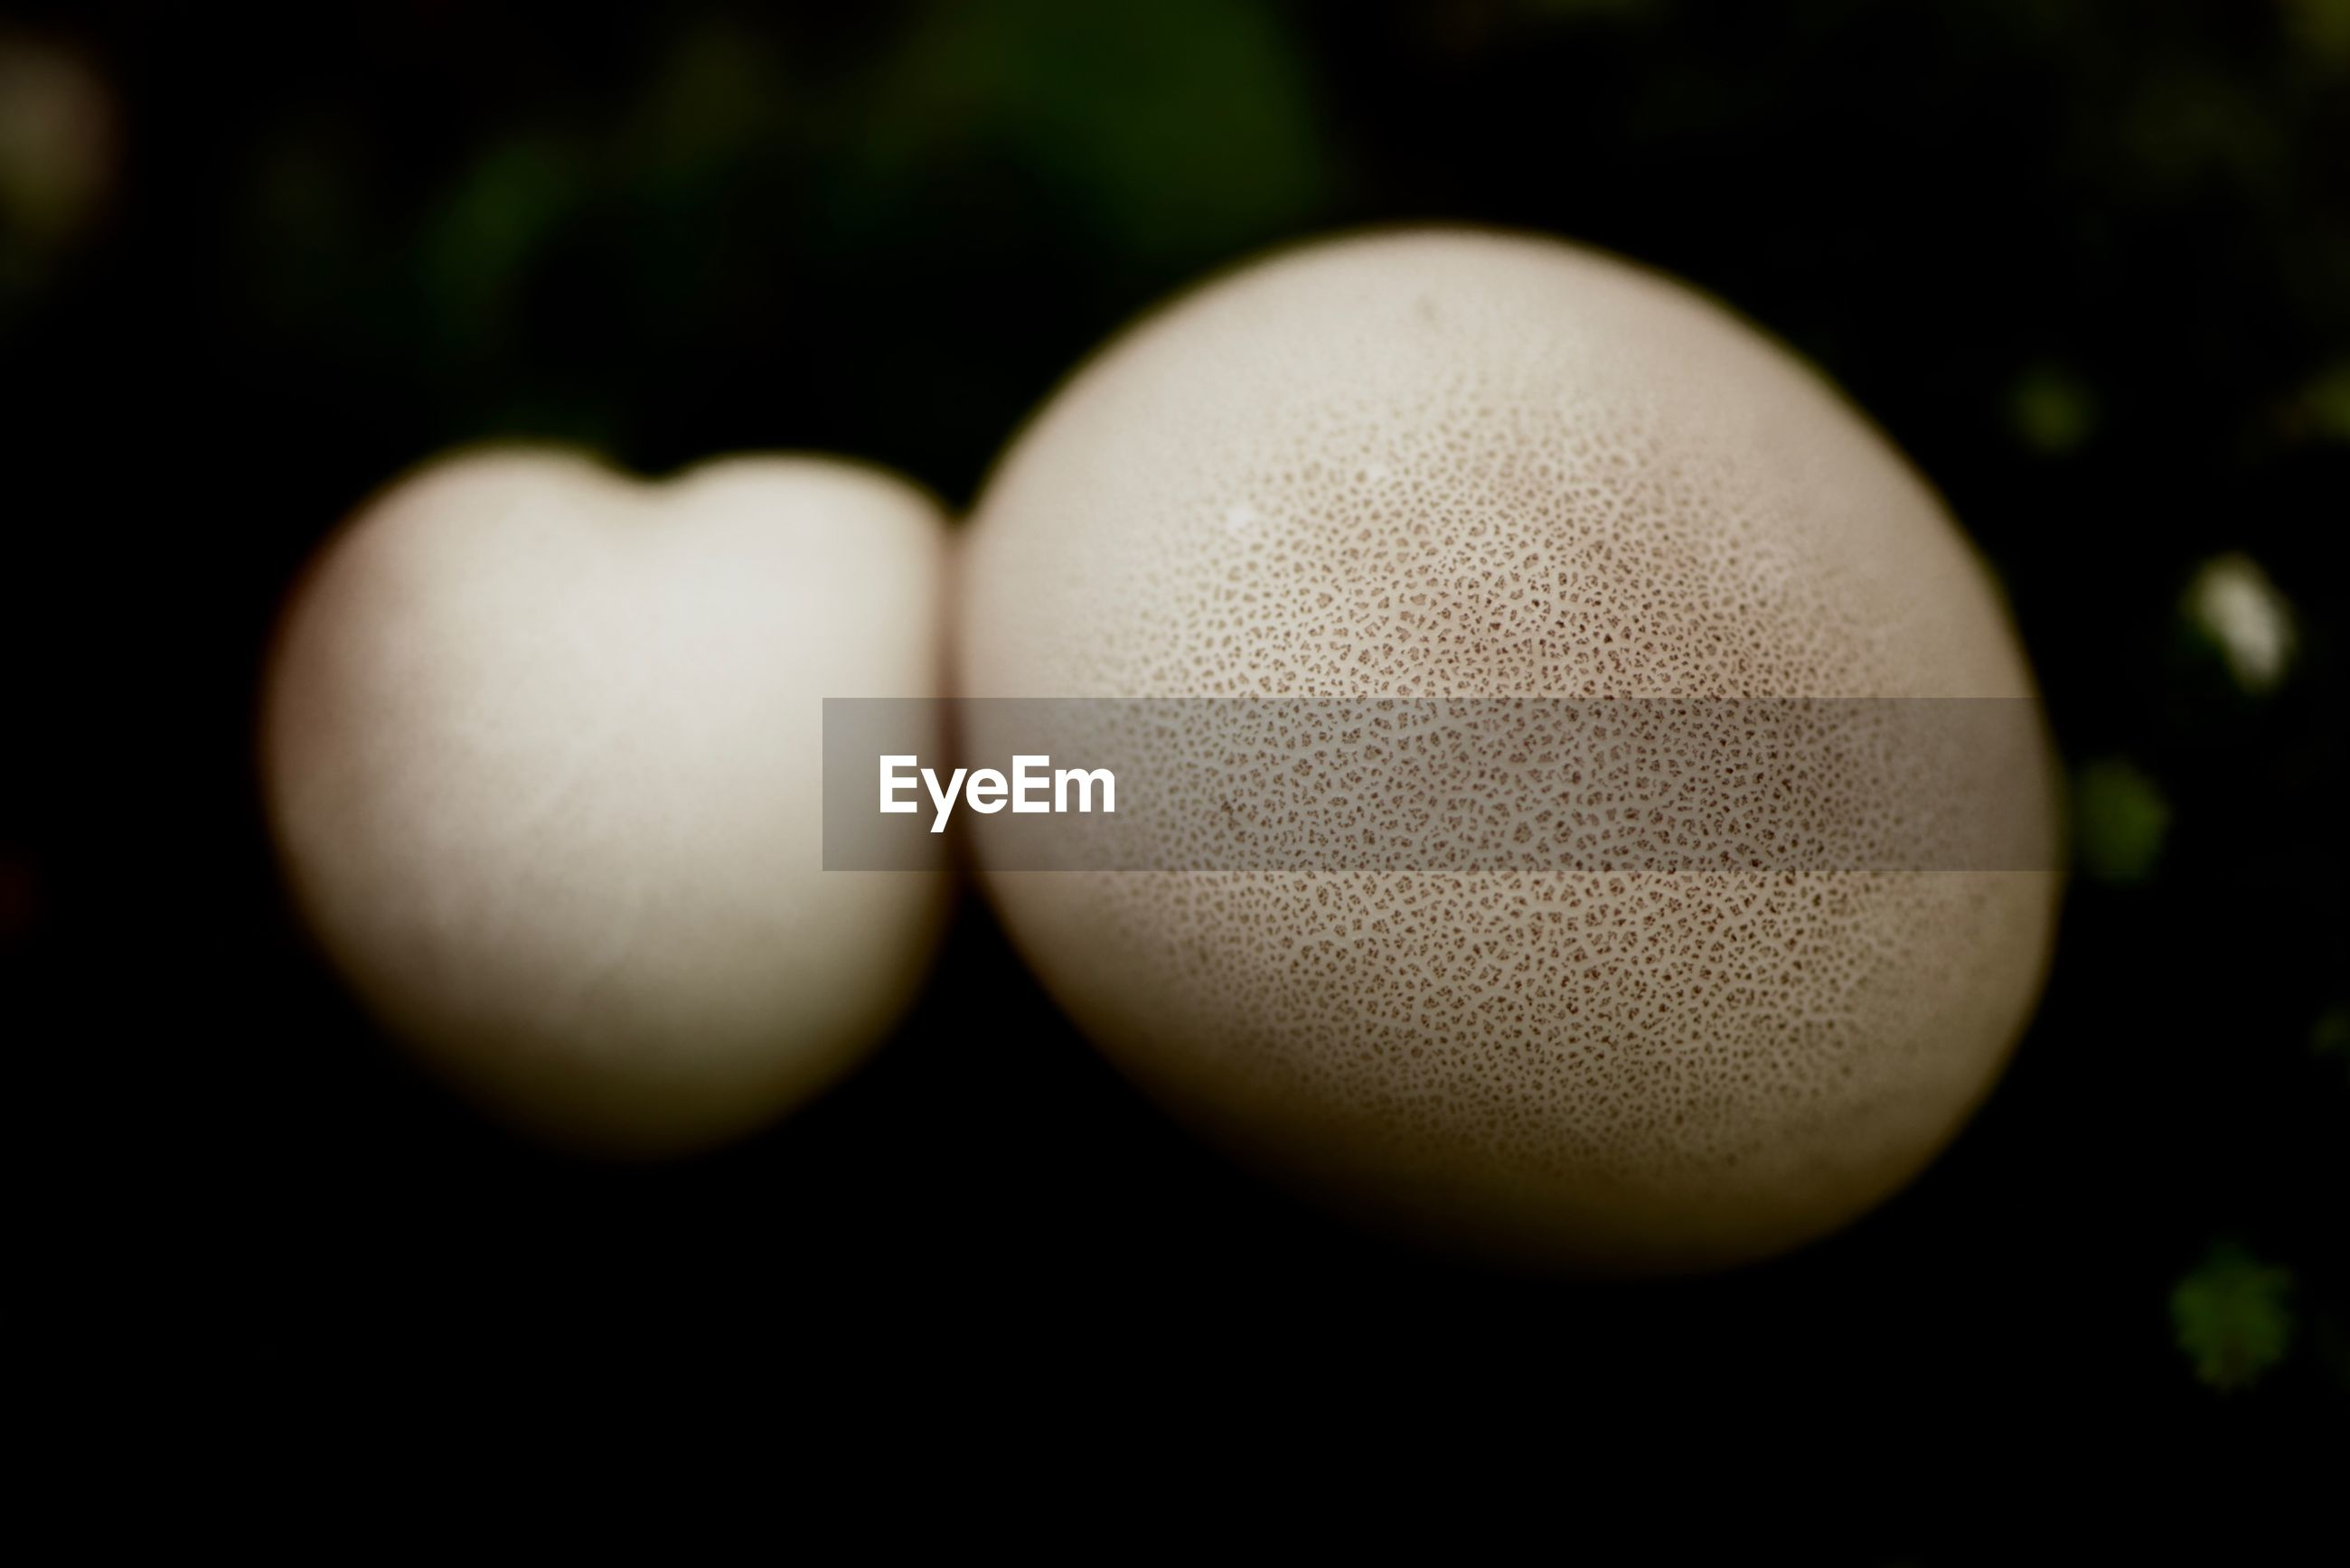 close-up, no people, food, food and drink, freshness, focus on foreground, wellbeing, indoors, still life, healthy eating, selective focus, vulnerability, egg, shape, fragility, nature, black background, white color, design